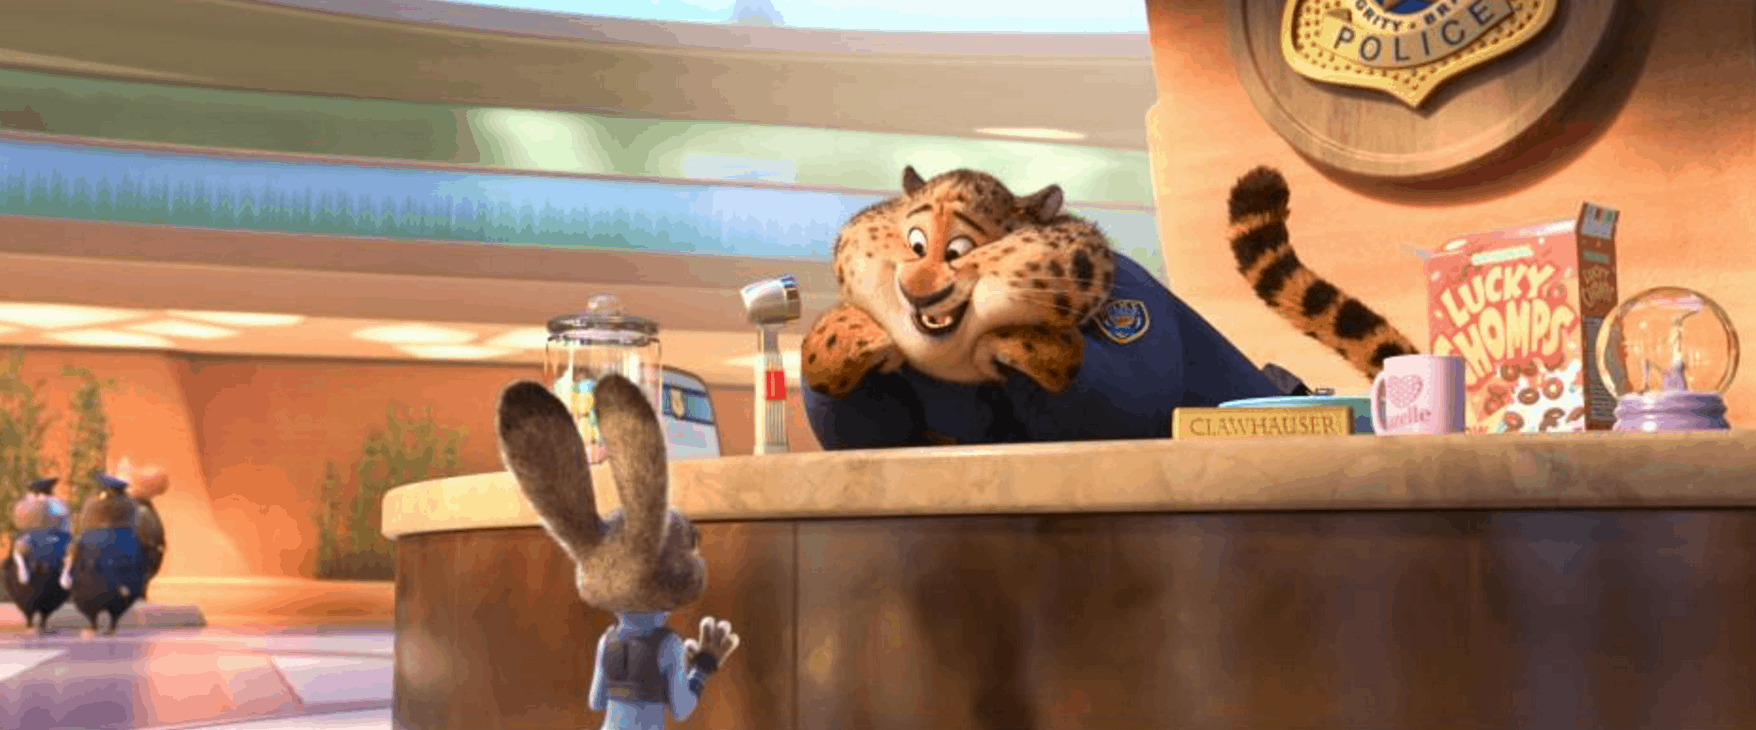 Disney's Zootopia Review - Now Playing in Theaters